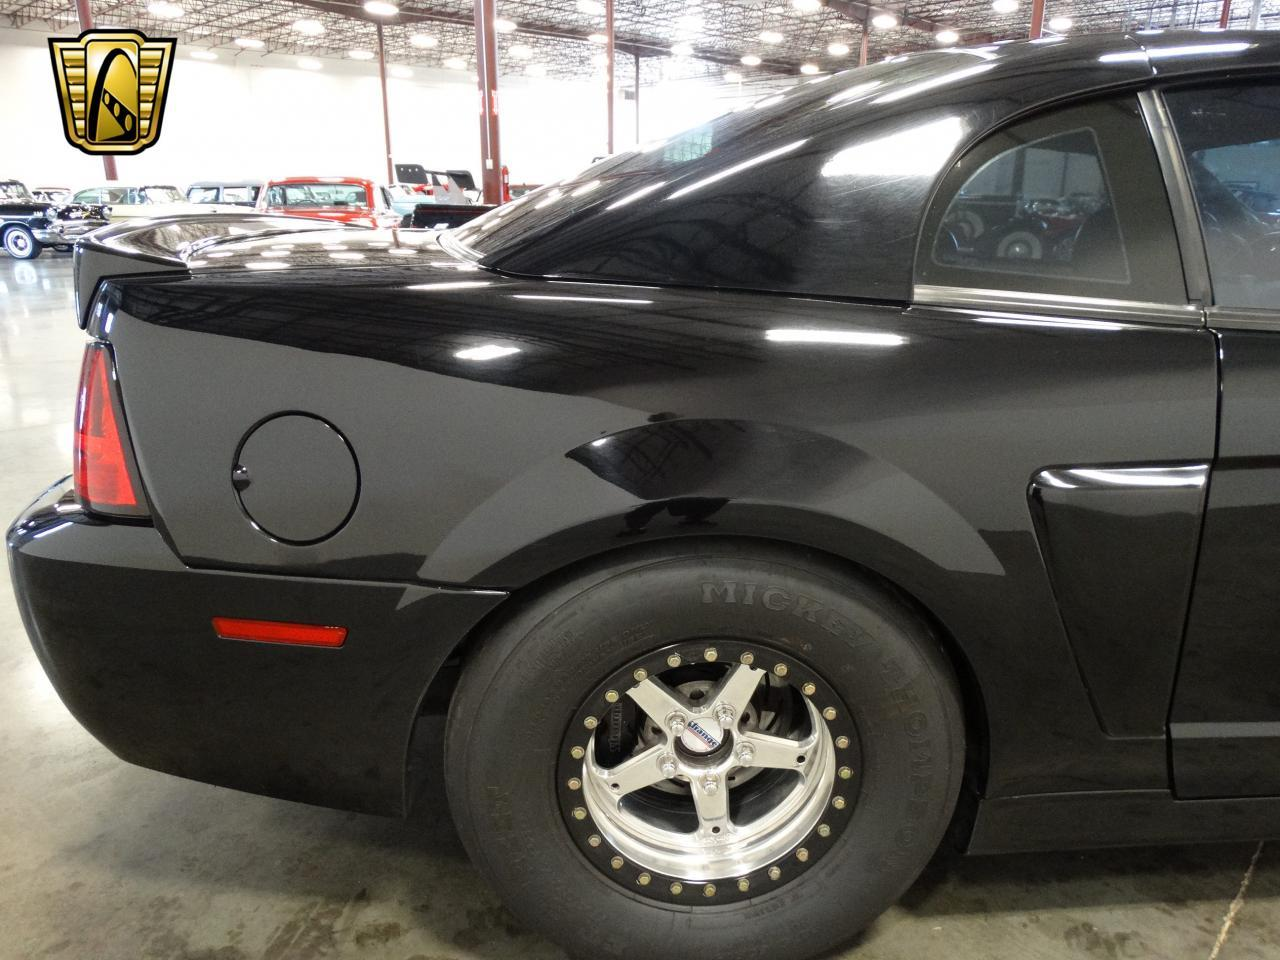 Large Picture of '02 Ford Mustang located in Tennessee - $22,995.00 Offered by Gateway Classic Cars - Nashville - L6A2